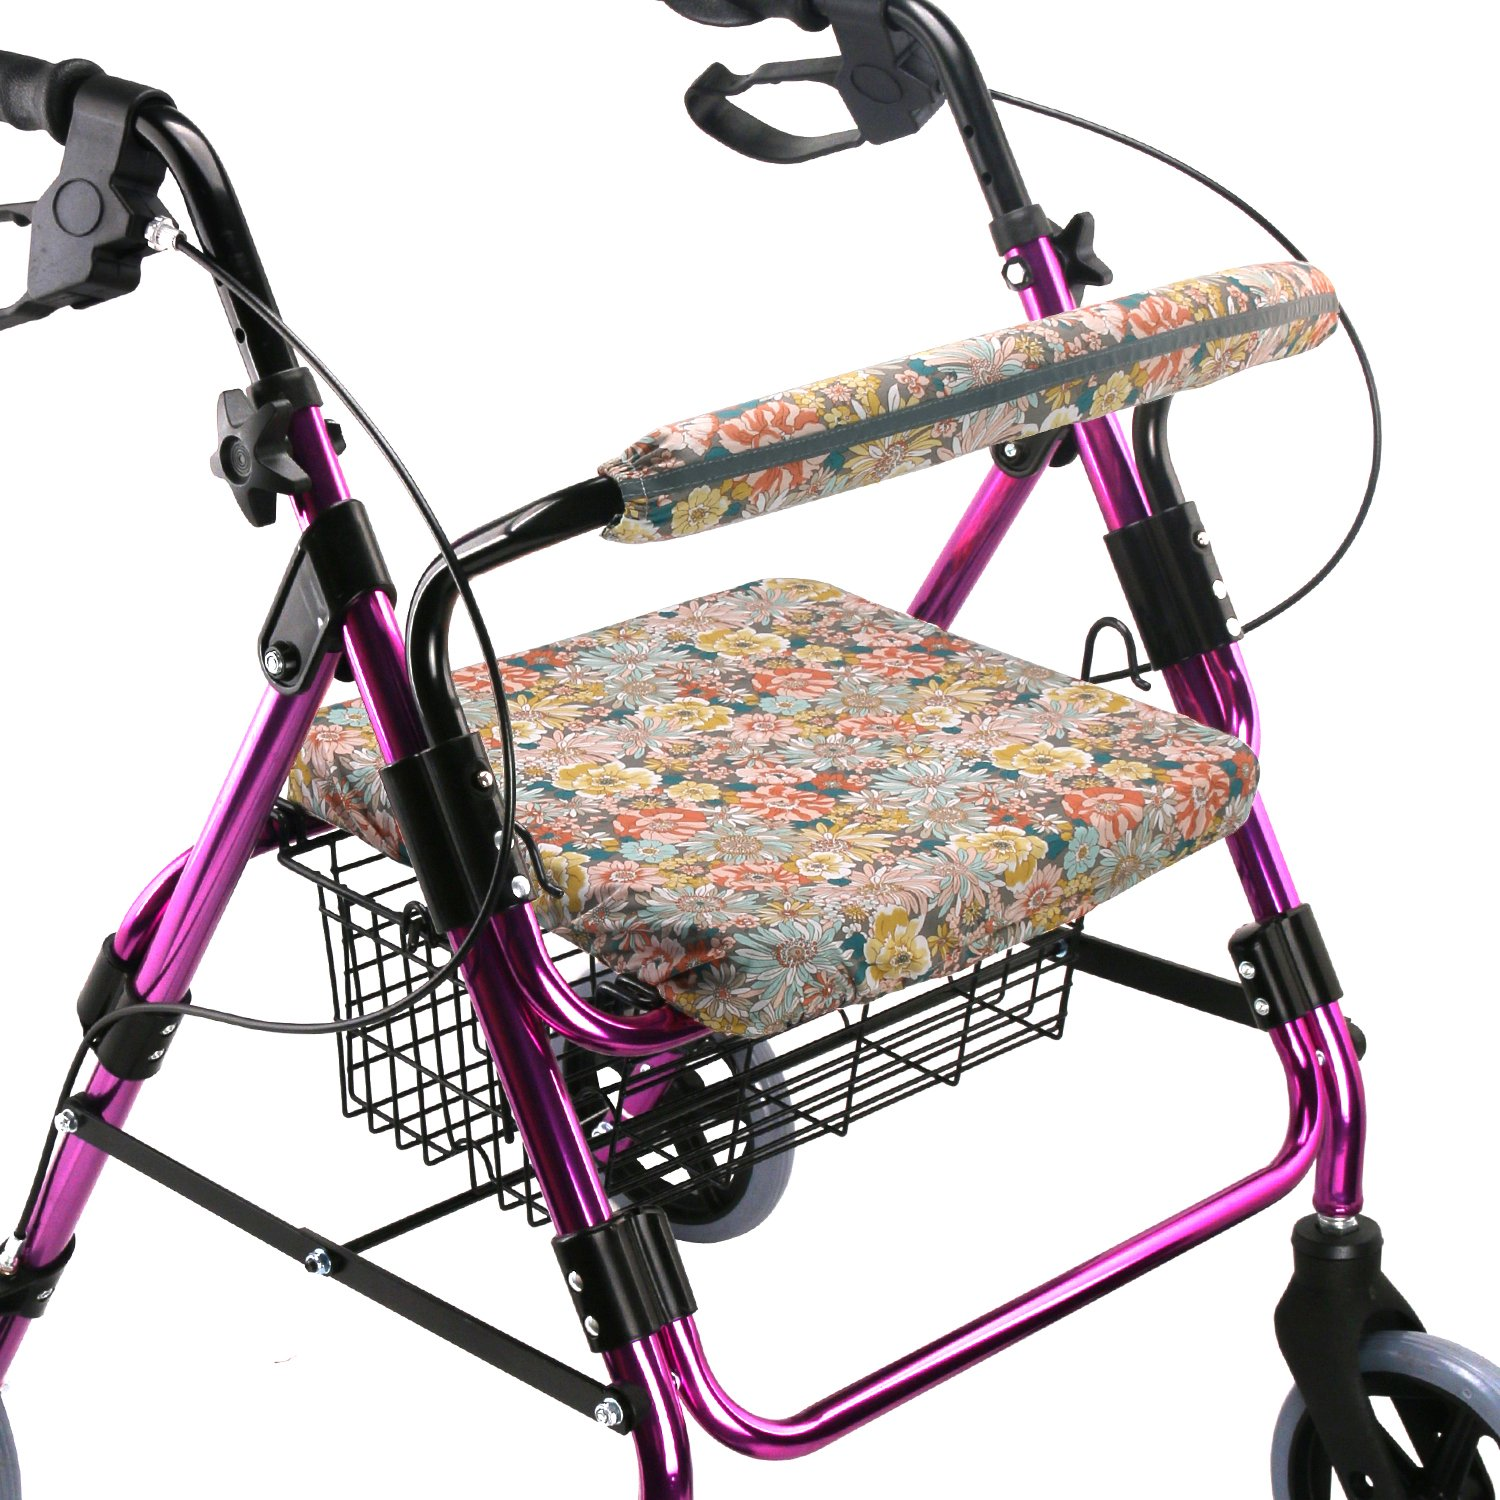 Walker Seat Cover Rollator Walker Seat and Backrest Covers Vibrant Walker Cover One Size Multiple Colors (CB1886)